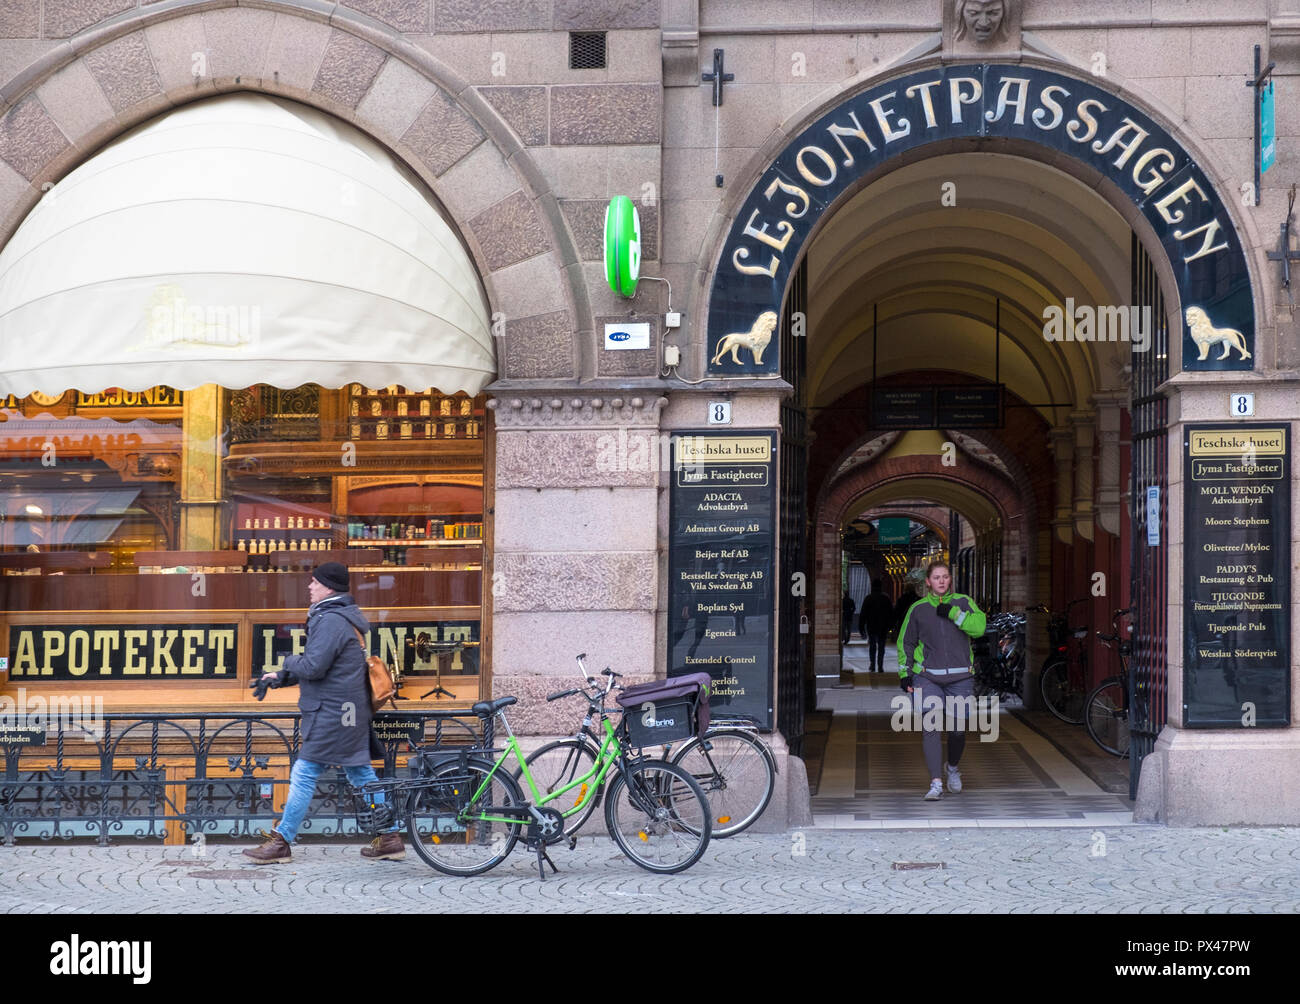 Bicycle and passageway, Malmo, Sweden - Stock Image